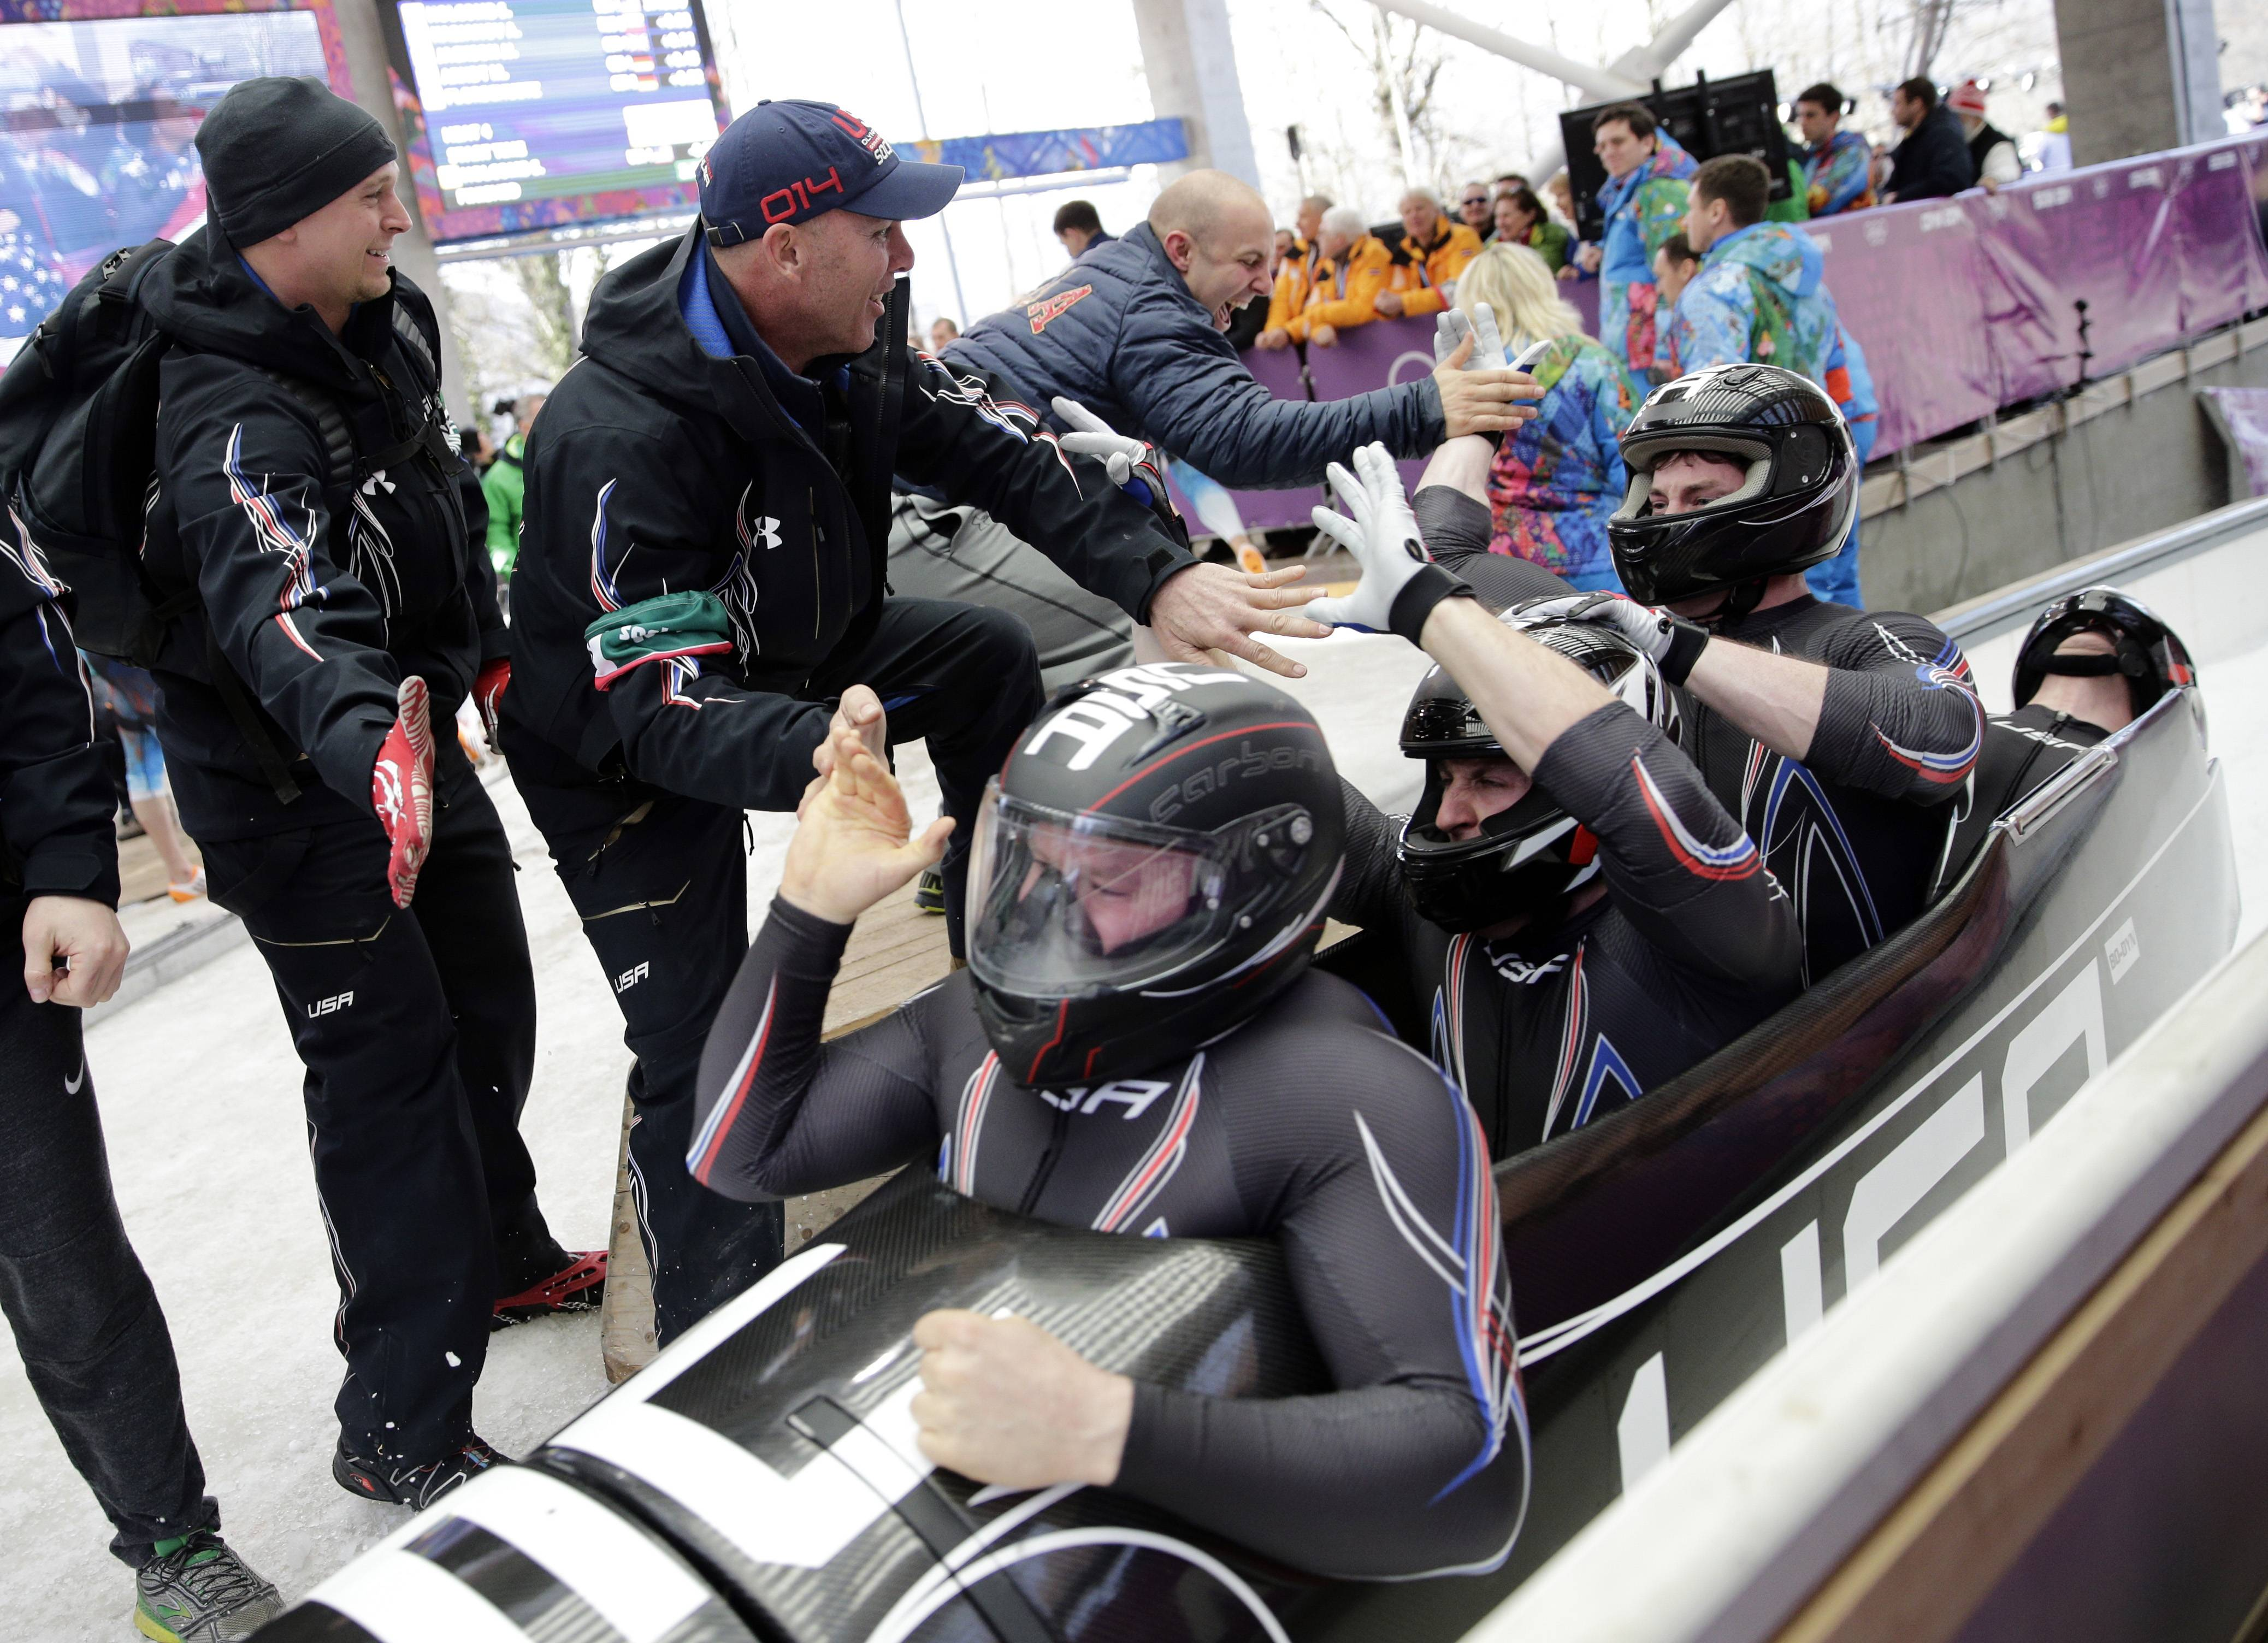 The team from the United States USA-1, with Steven Holcomb, Curtis Tomasevicz, Steven Langton and Christopher Fogt, celebrate after they won the bronze medal during the men's four-man bobsled competition final at the 2014 Winter Olympics, Sunday, Feb. 23, 2014, in Krasnaya Polyana, Russia.